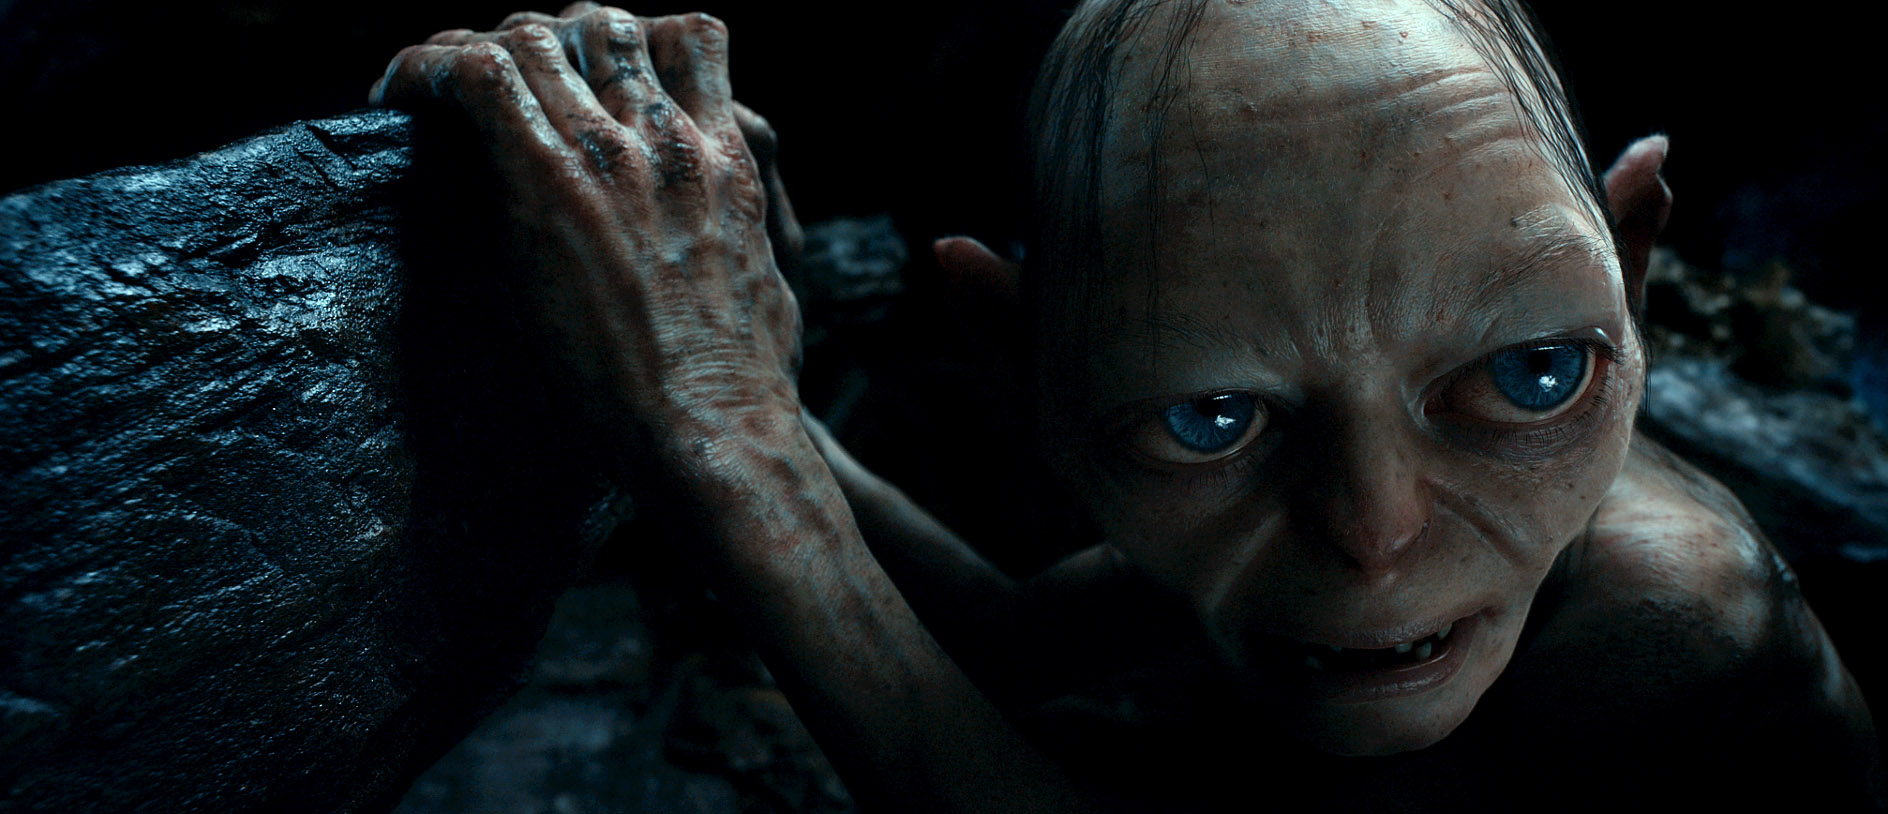 more pictures from quotthe hobbitquot and advance ticket